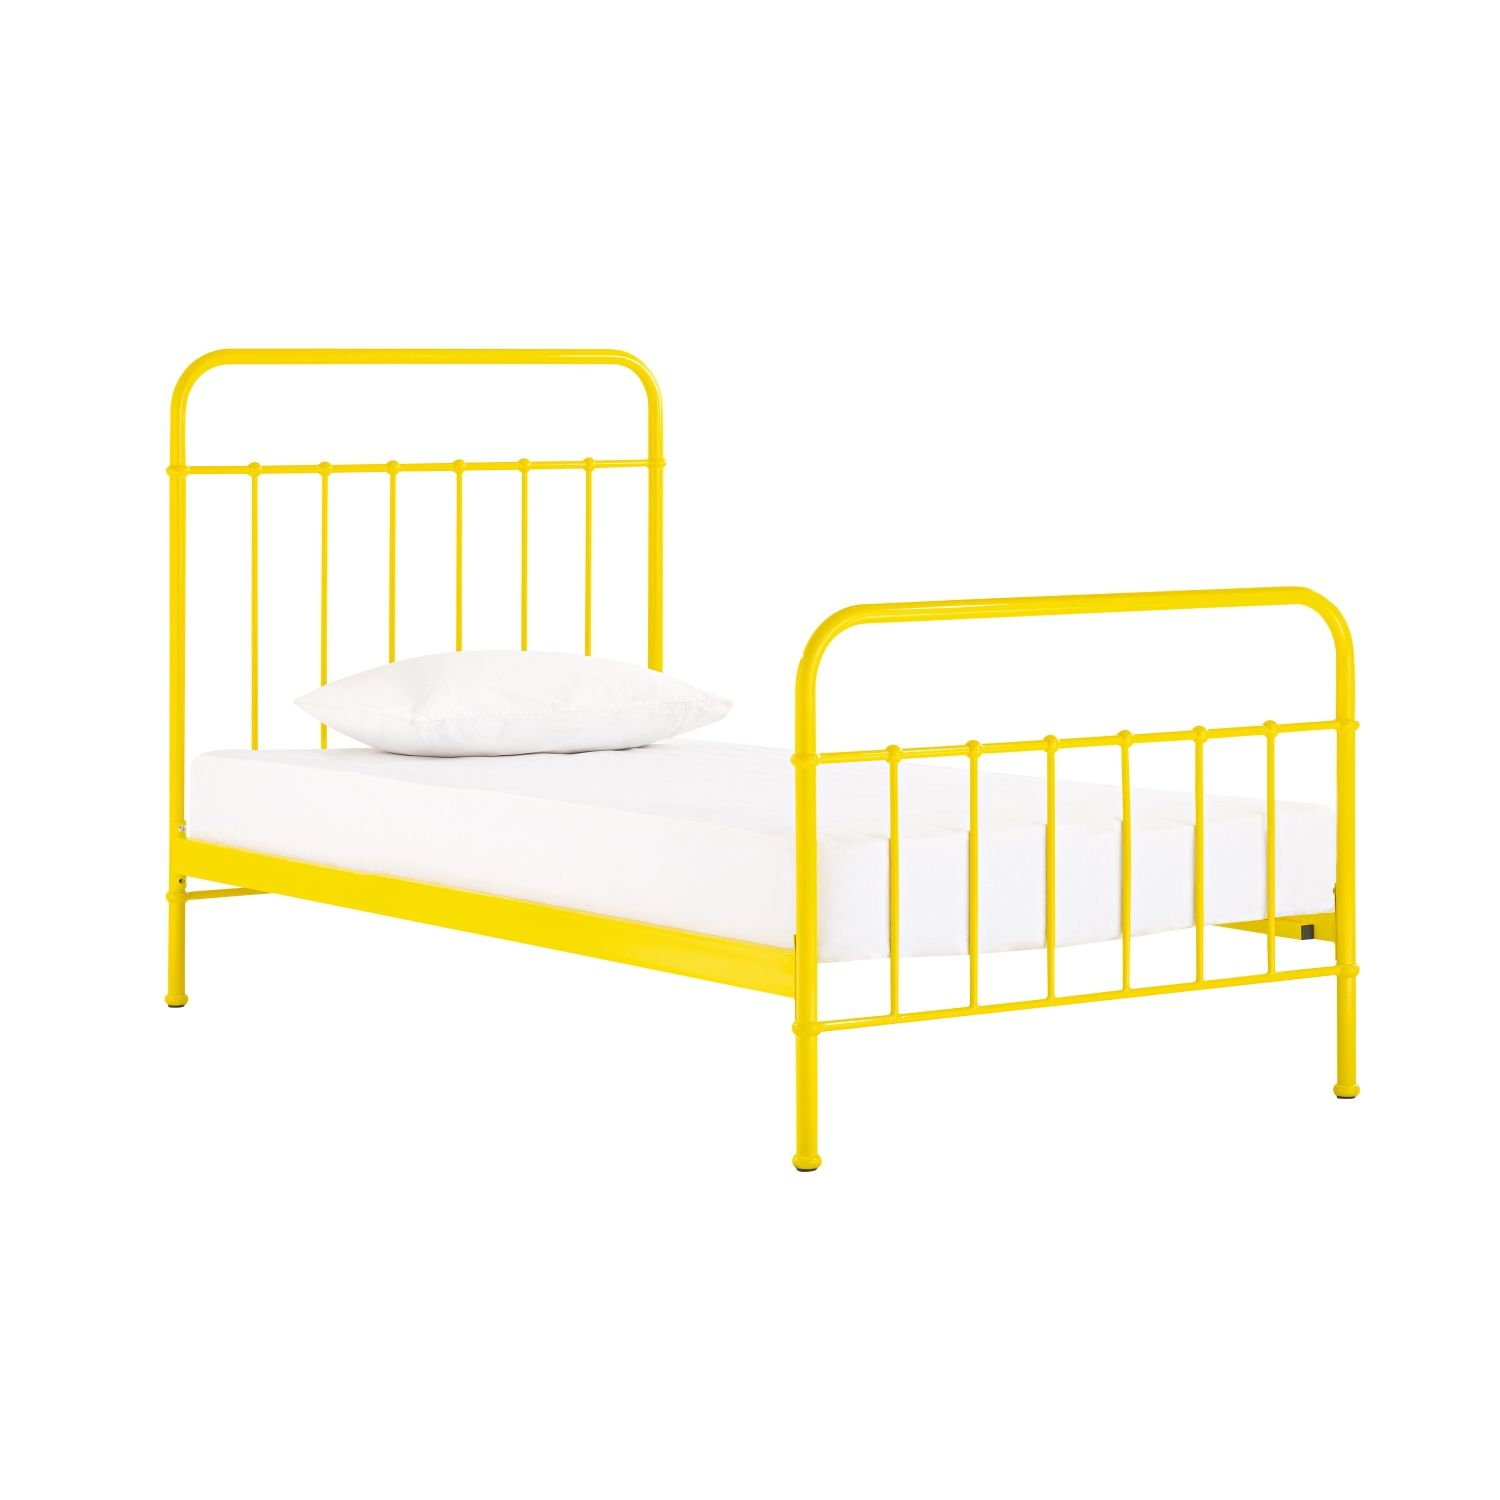 Potentially Faddish Sunday Sunshine Yellow Bed Frame From Domayne Yellow Bedding Kid Beds Bed Frame